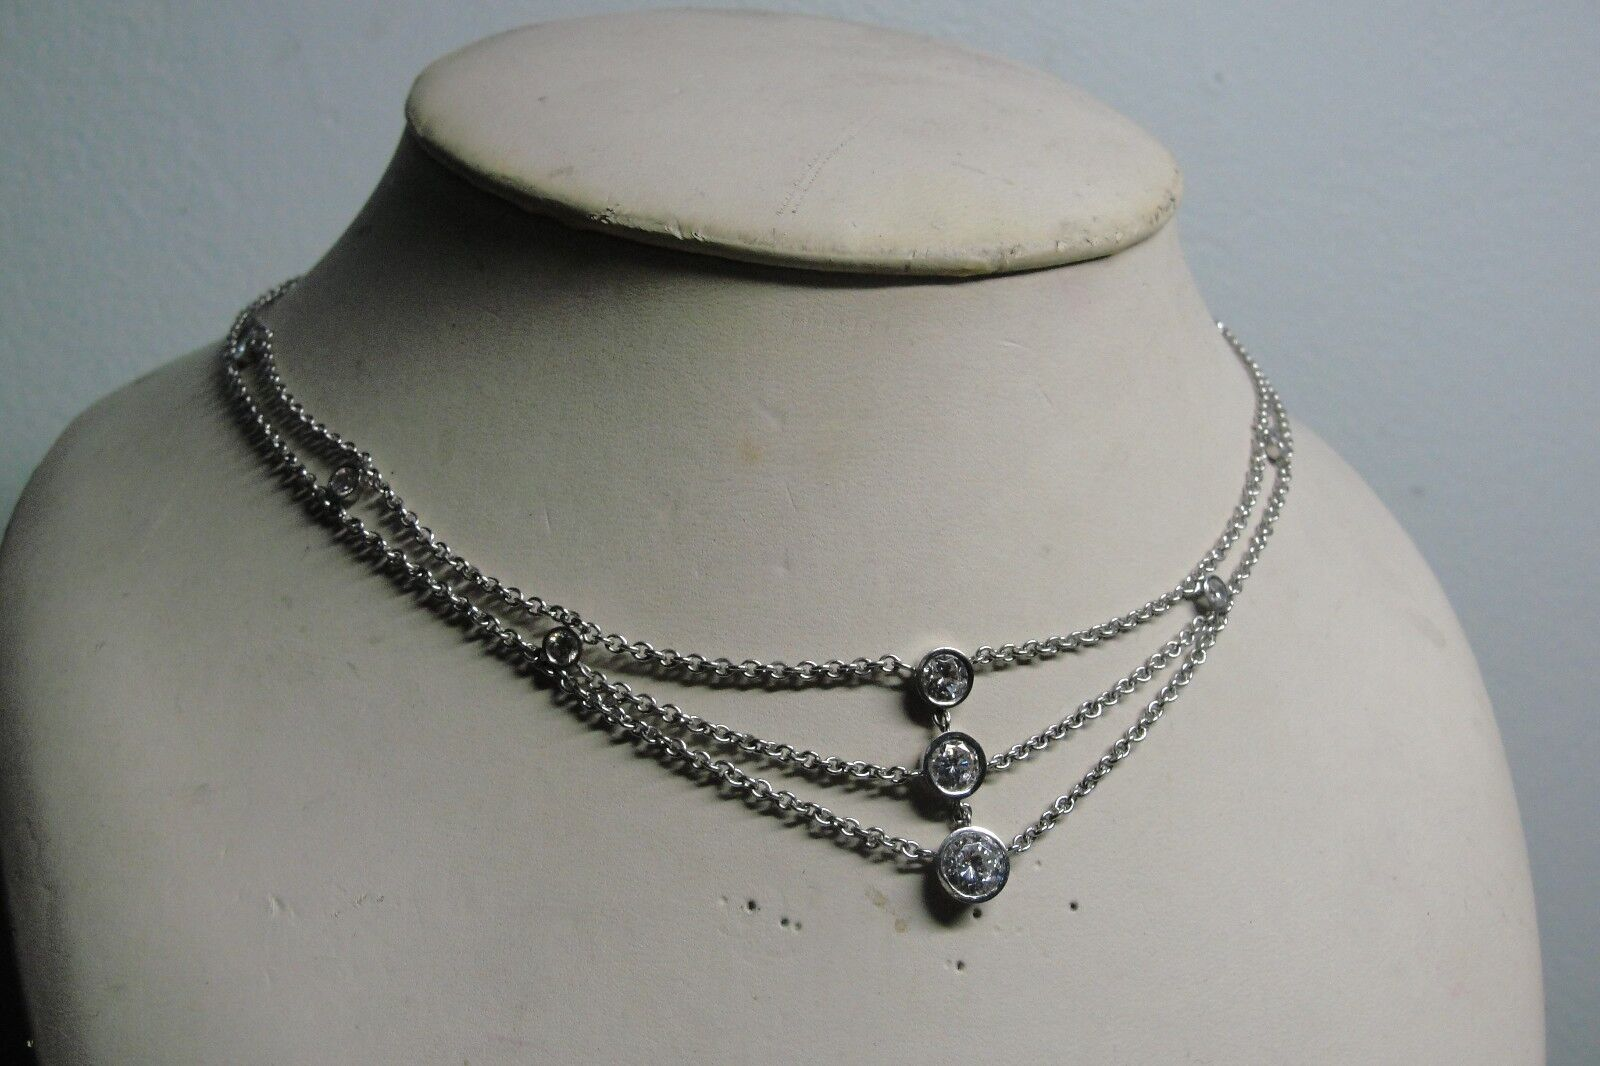 14K White gold Choker with CZ Stones